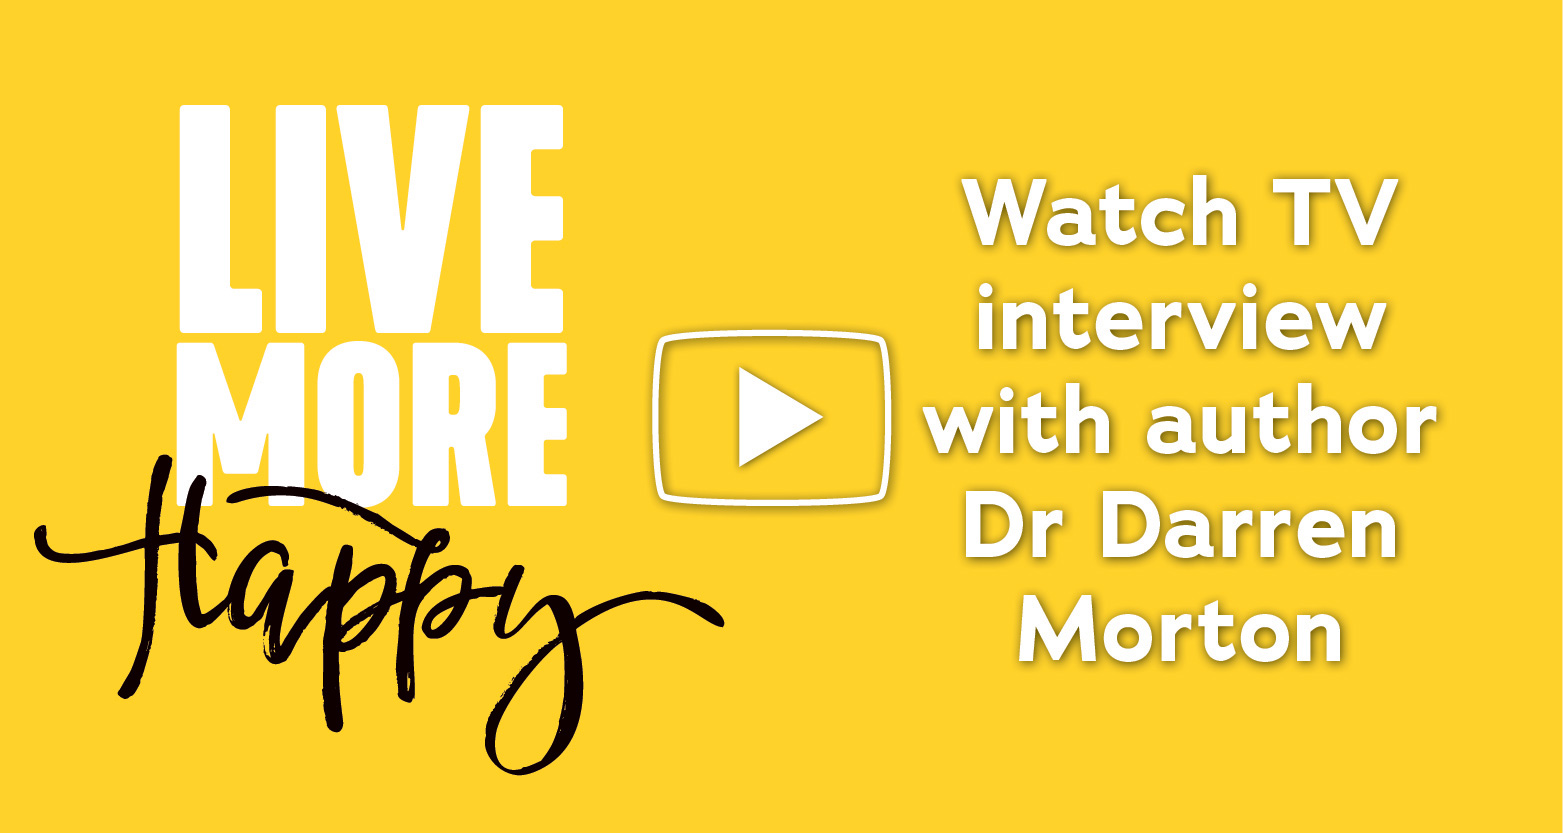 Watch TV Interview with Darren Morton